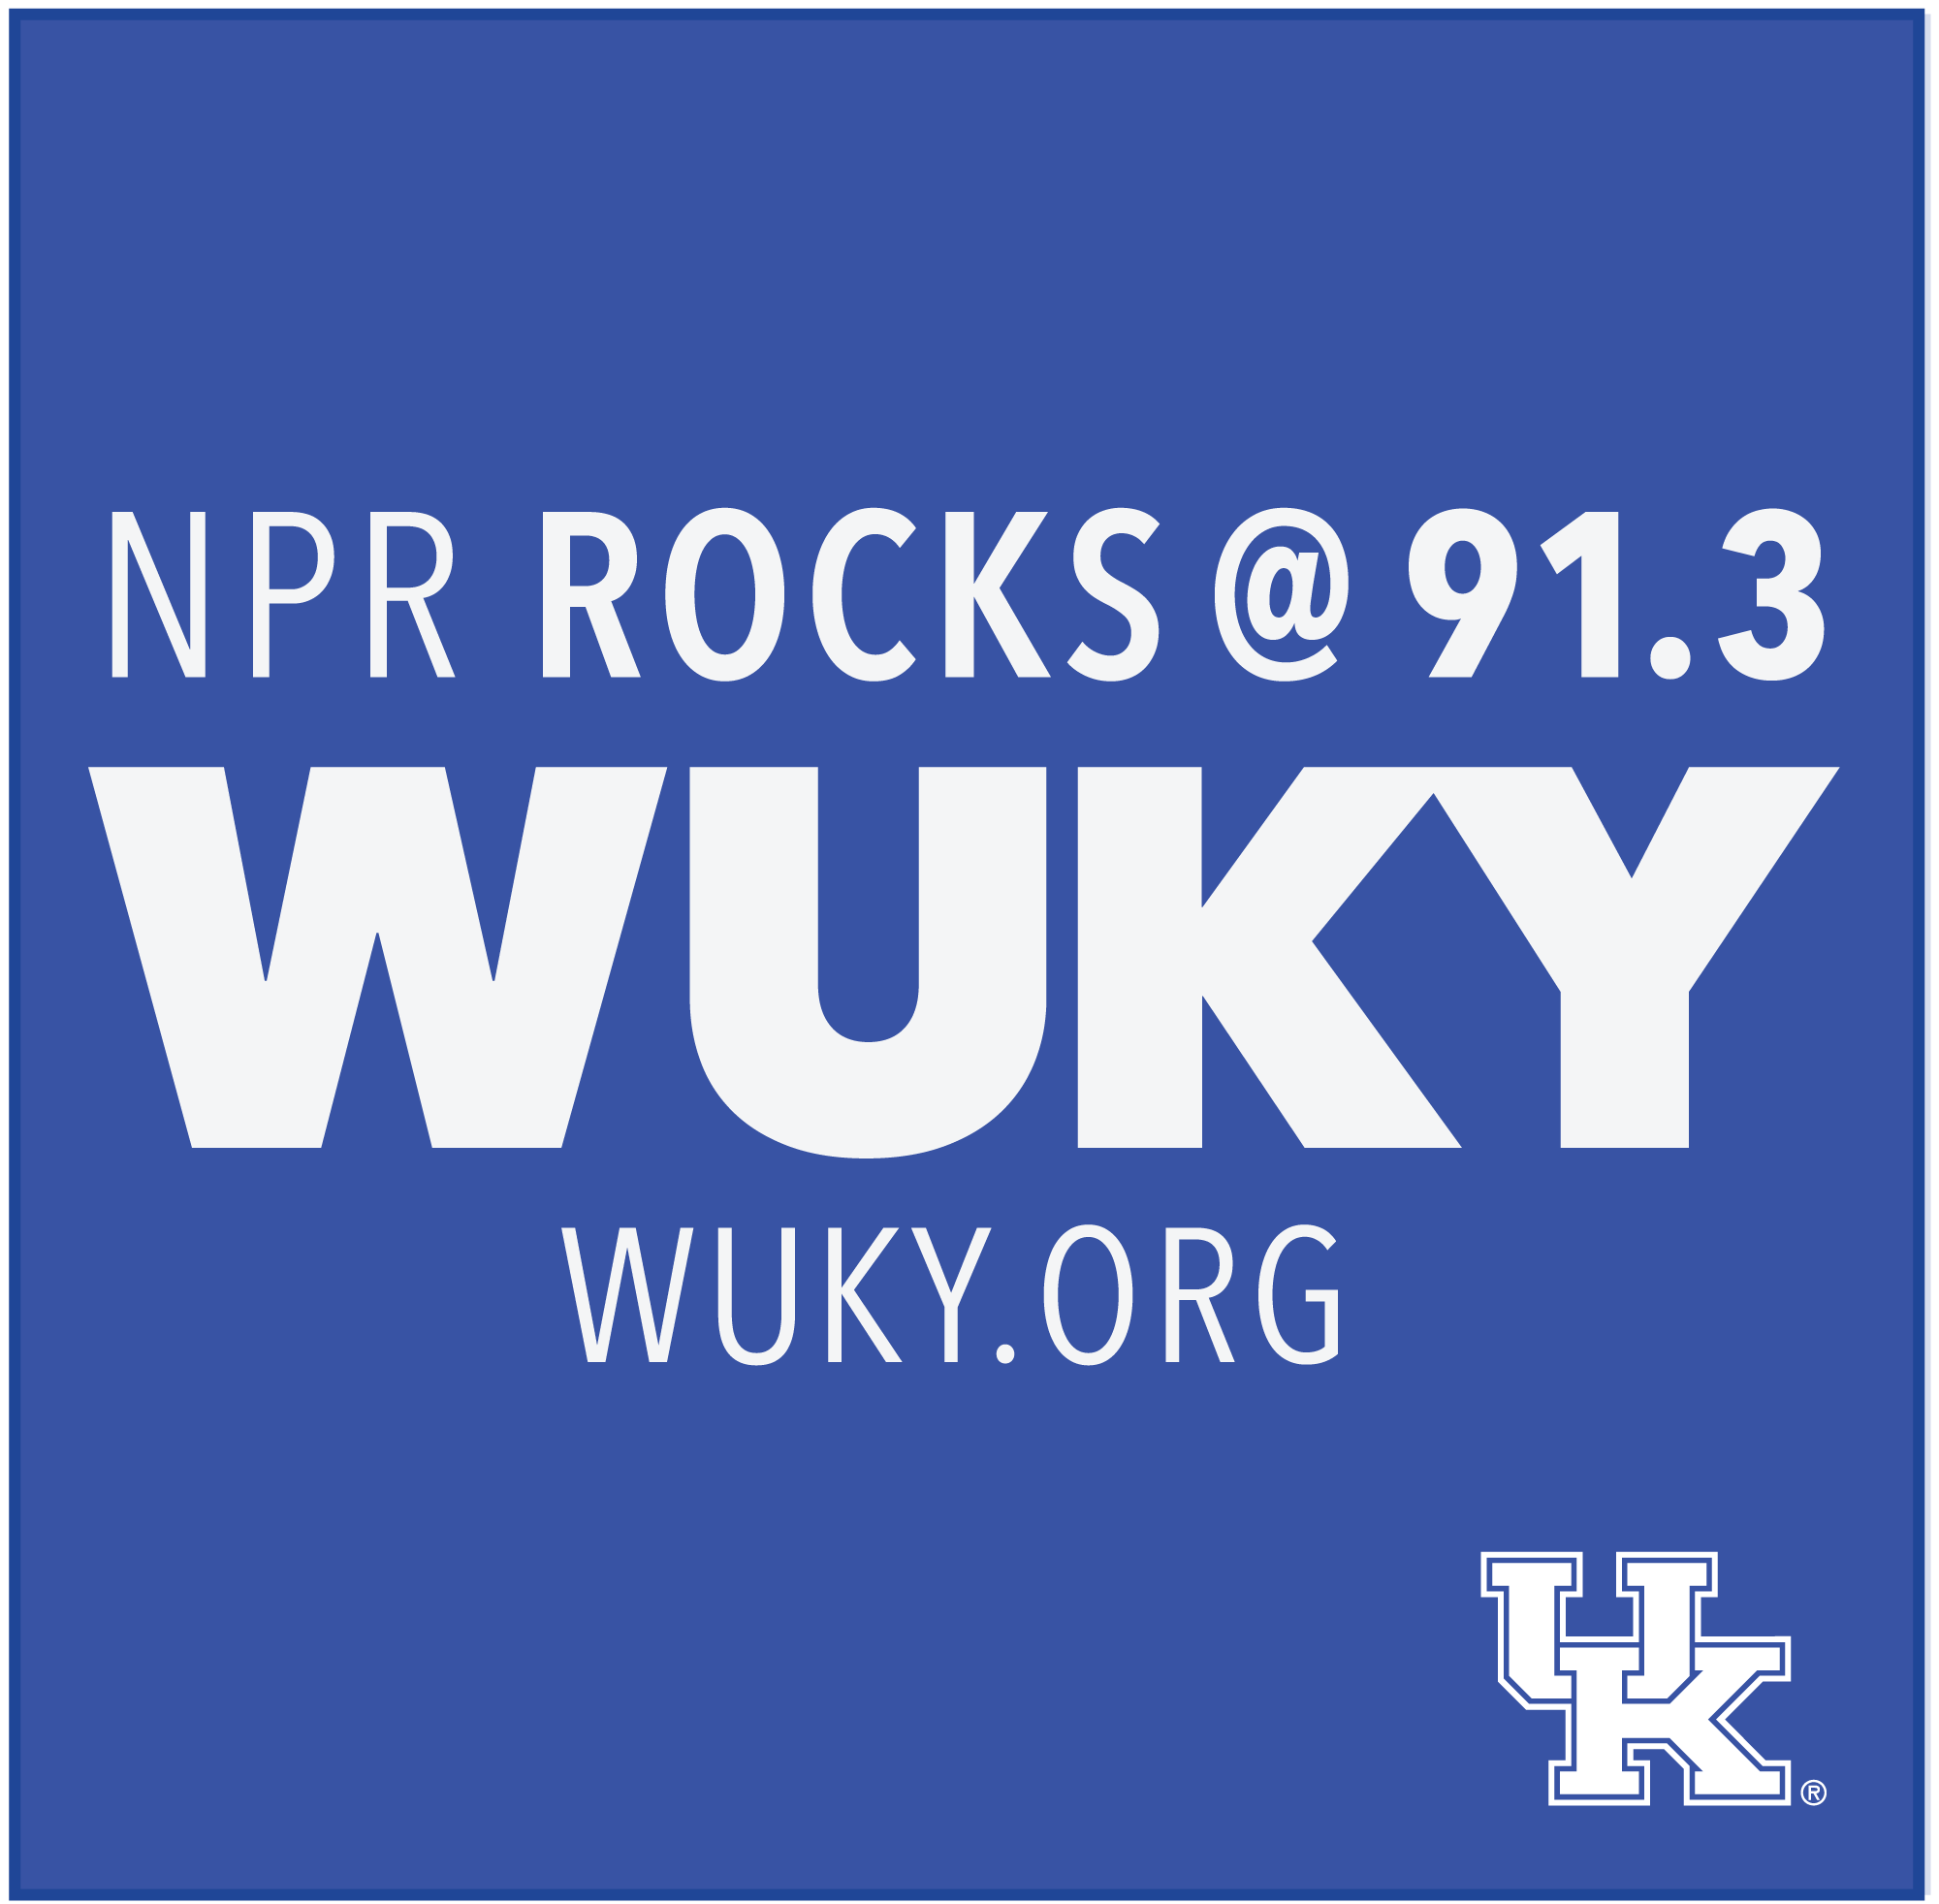 WUKY logo